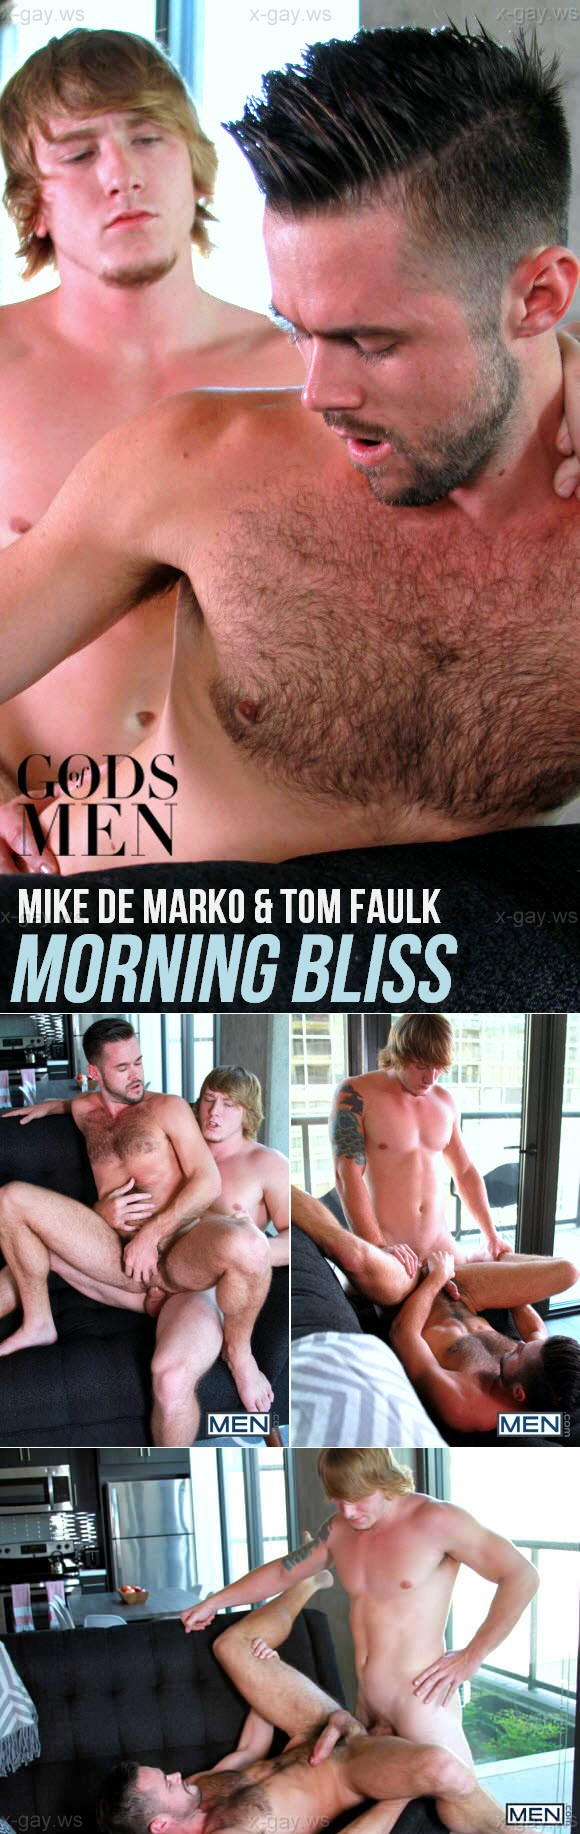 MEN – Gods Of Men – Morning Bliss: Mike De Marko & Tom Faulk